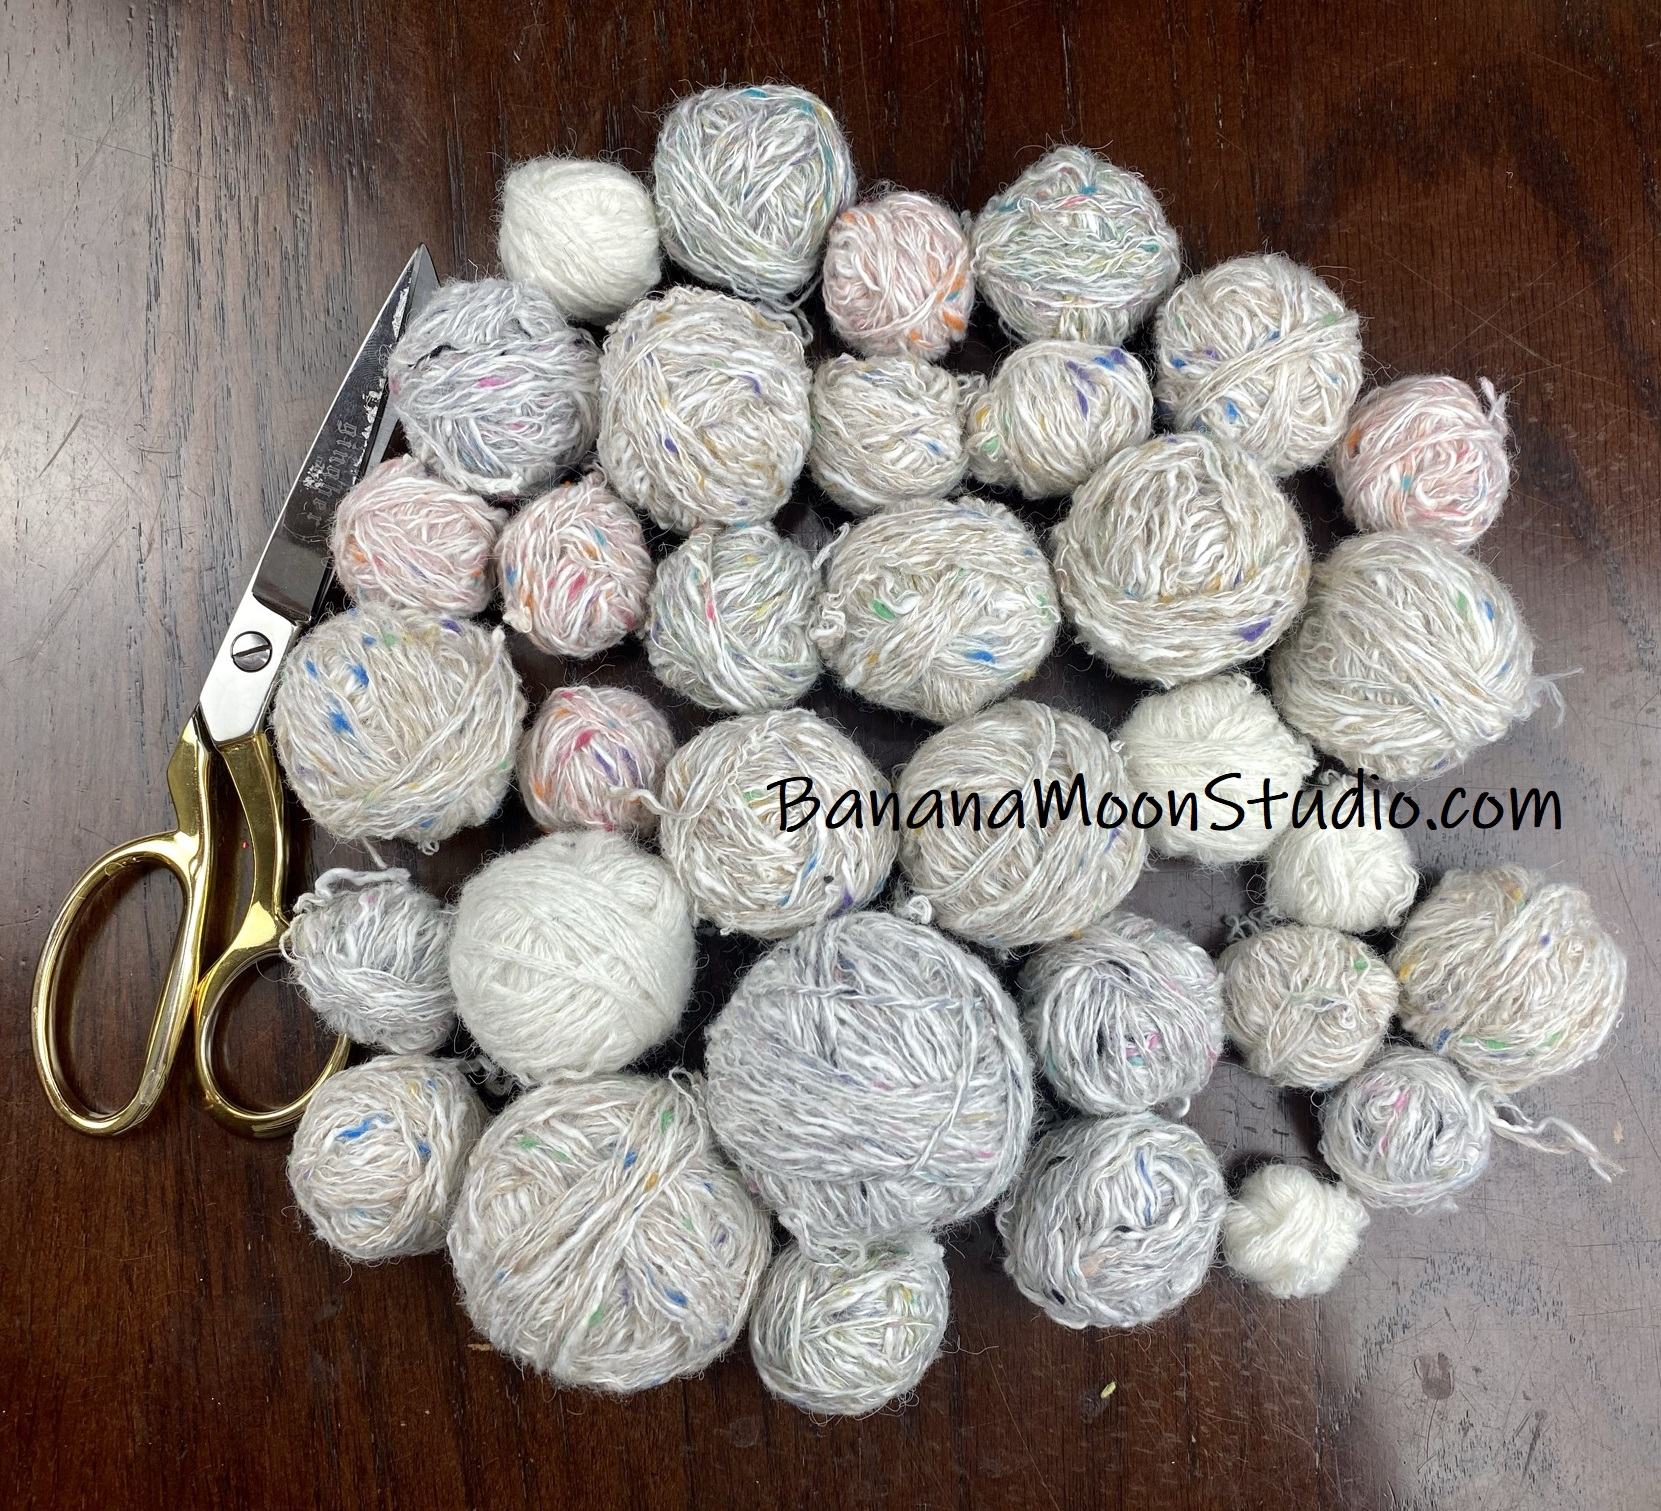 All finished unraveling yarn from thrift store sweaters. Photo tutorial from Banana Moon Studio.